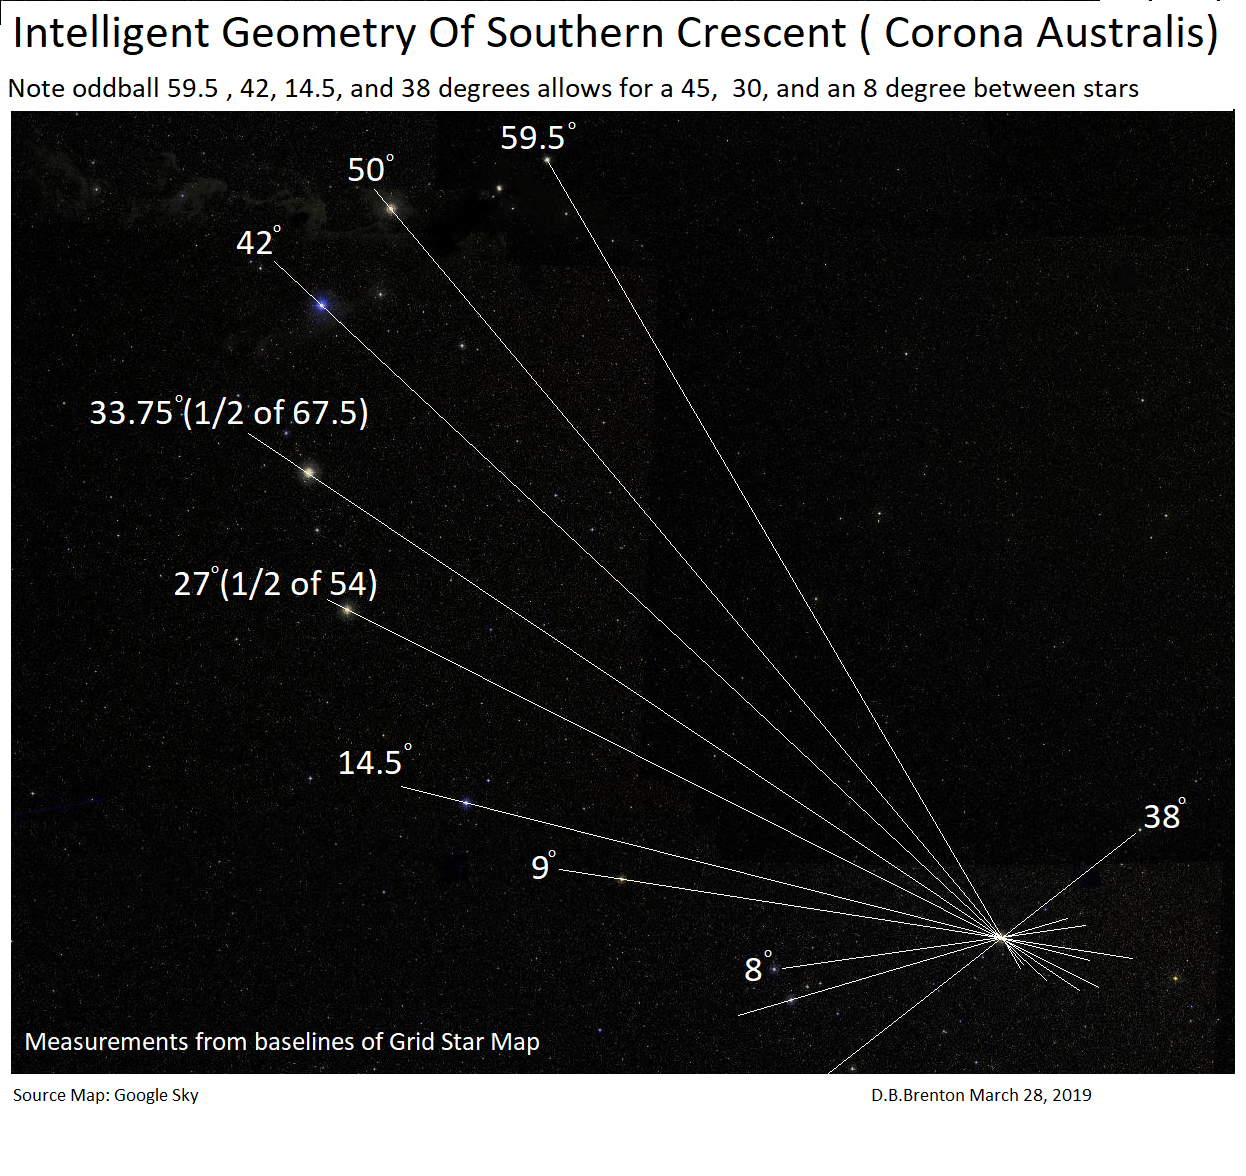 Southern Crescent Geometry png for page